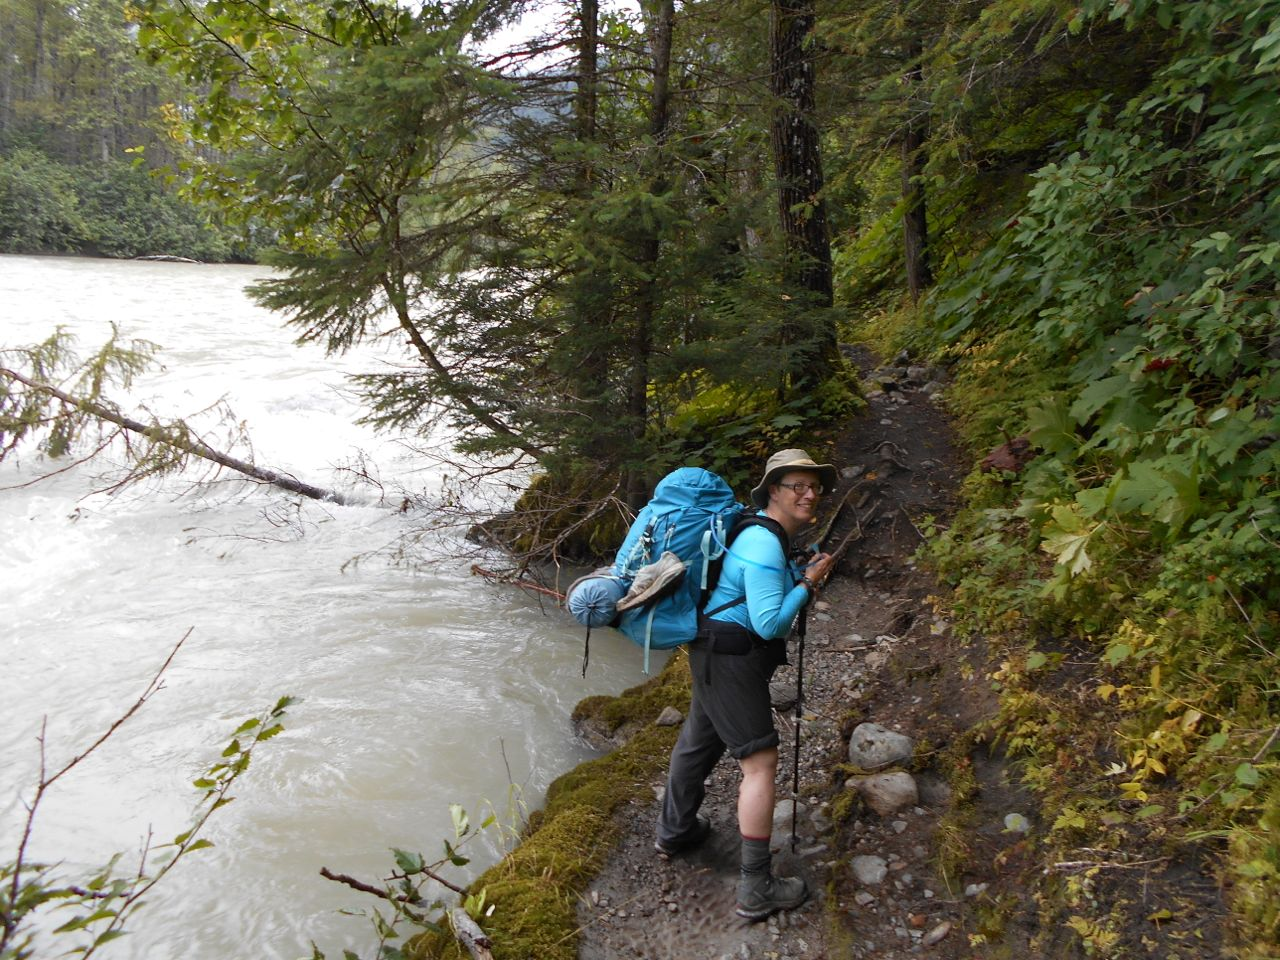 You can see how high the Taiya River is here. While it made things wet we never had to wade in water any deeper than our ankle. The previous day, hikers had been up their knees and even thighs.